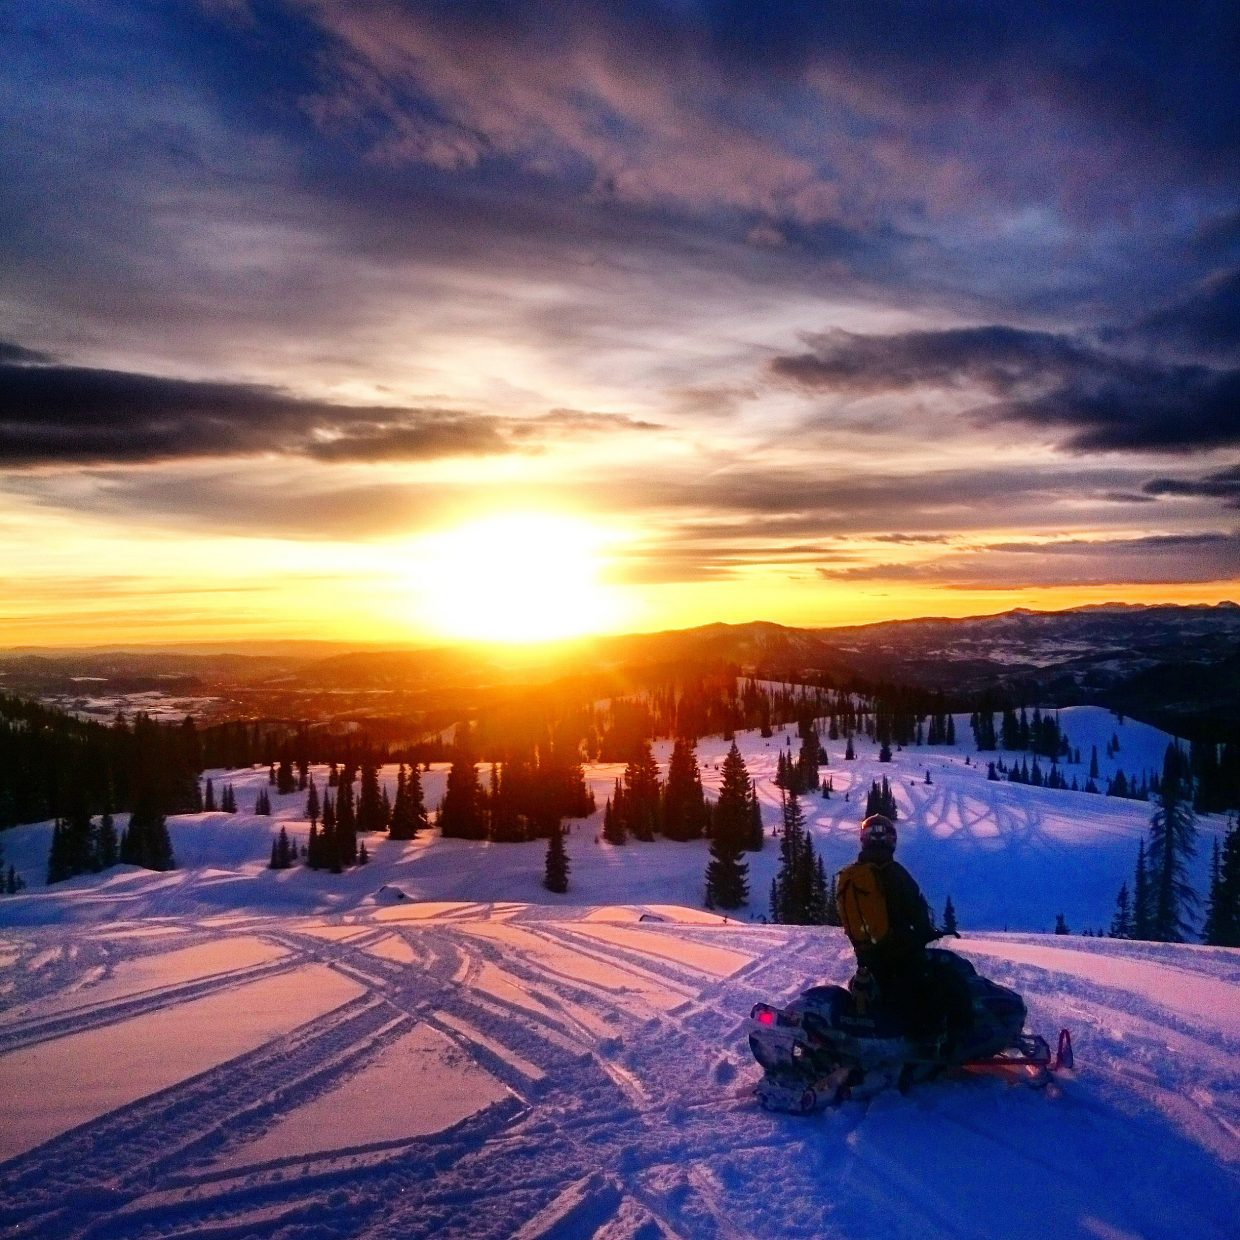 Sunset on Buff Pass. Submitted by Nate Bird.